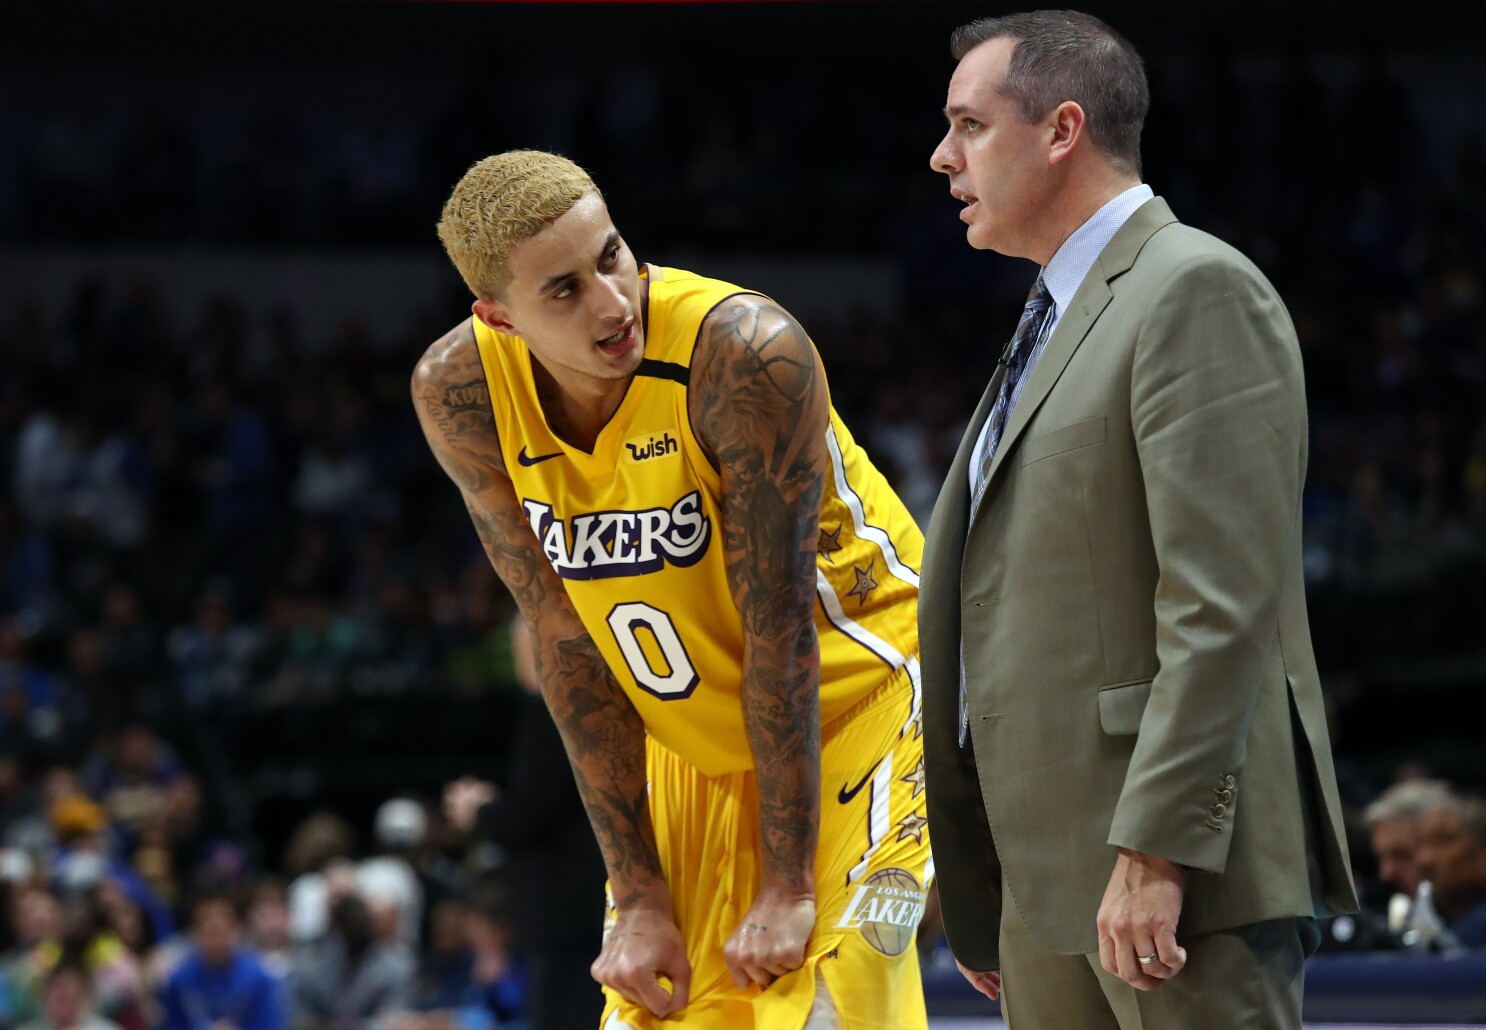 Kyle Kuzma Just Increased His Value To The Lakers But Shot